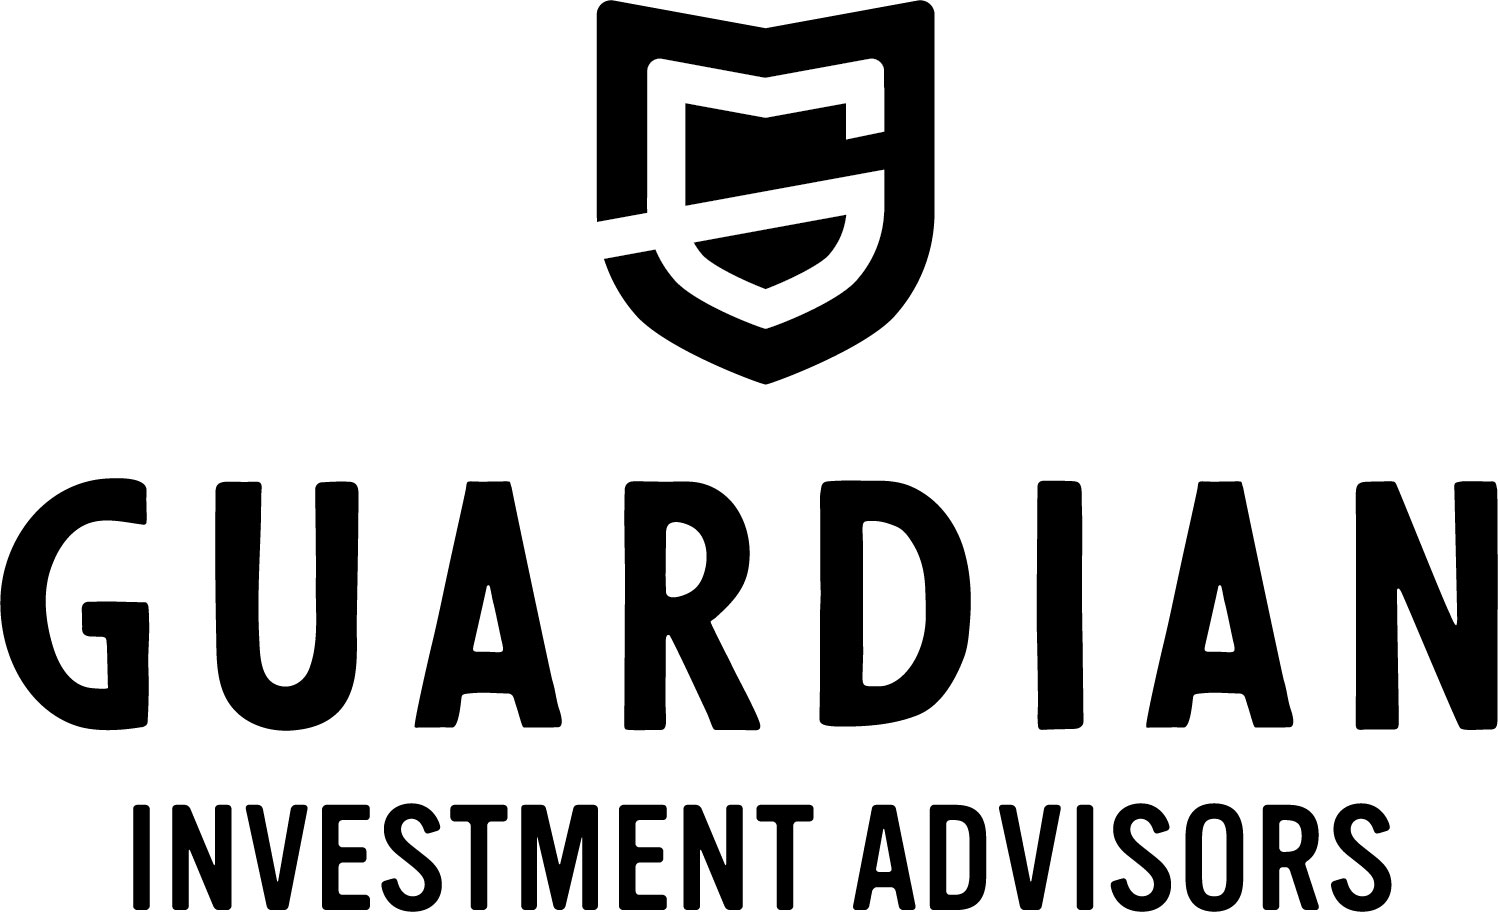 Guardian Investment Advisors Sponsor Logo